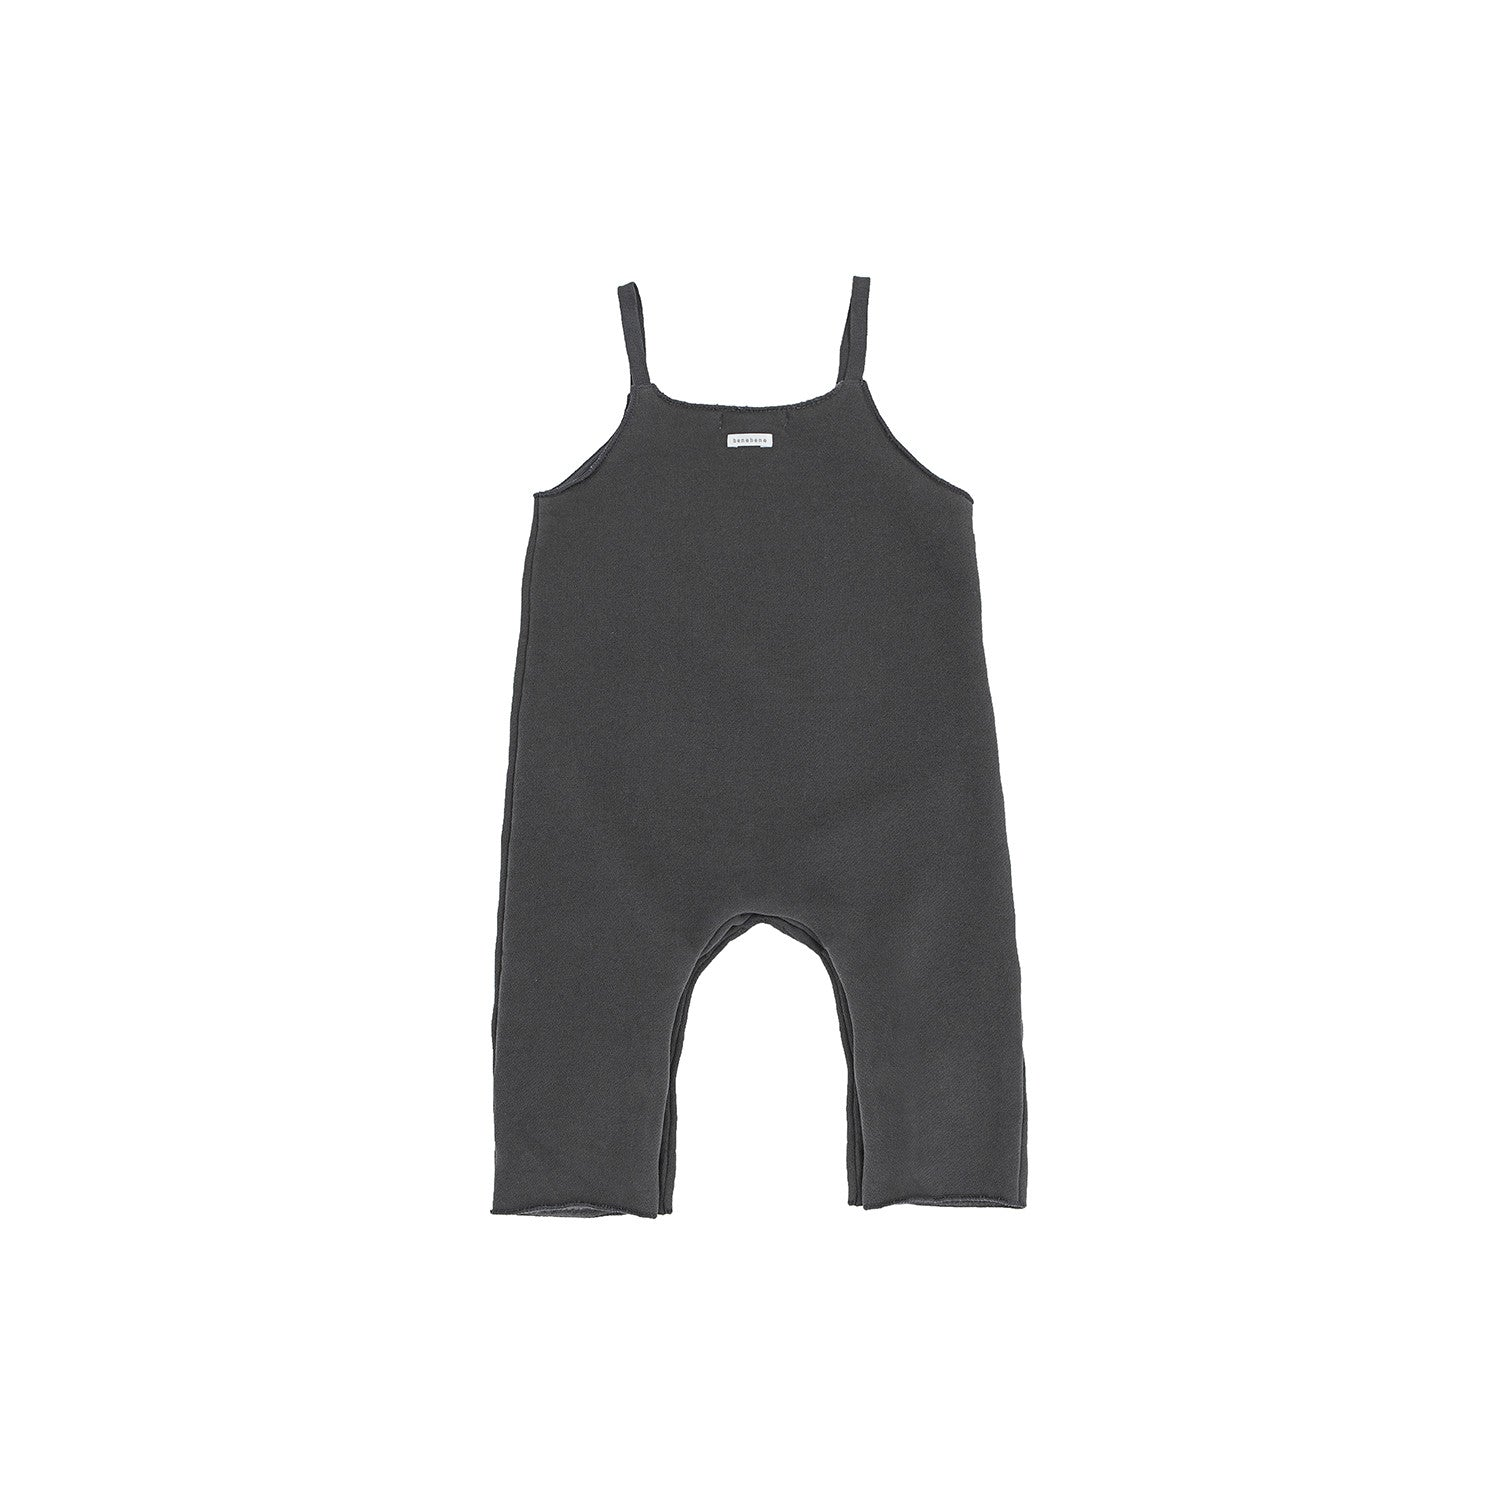 Bene Bene Charcoal Cotton Jumpsuit